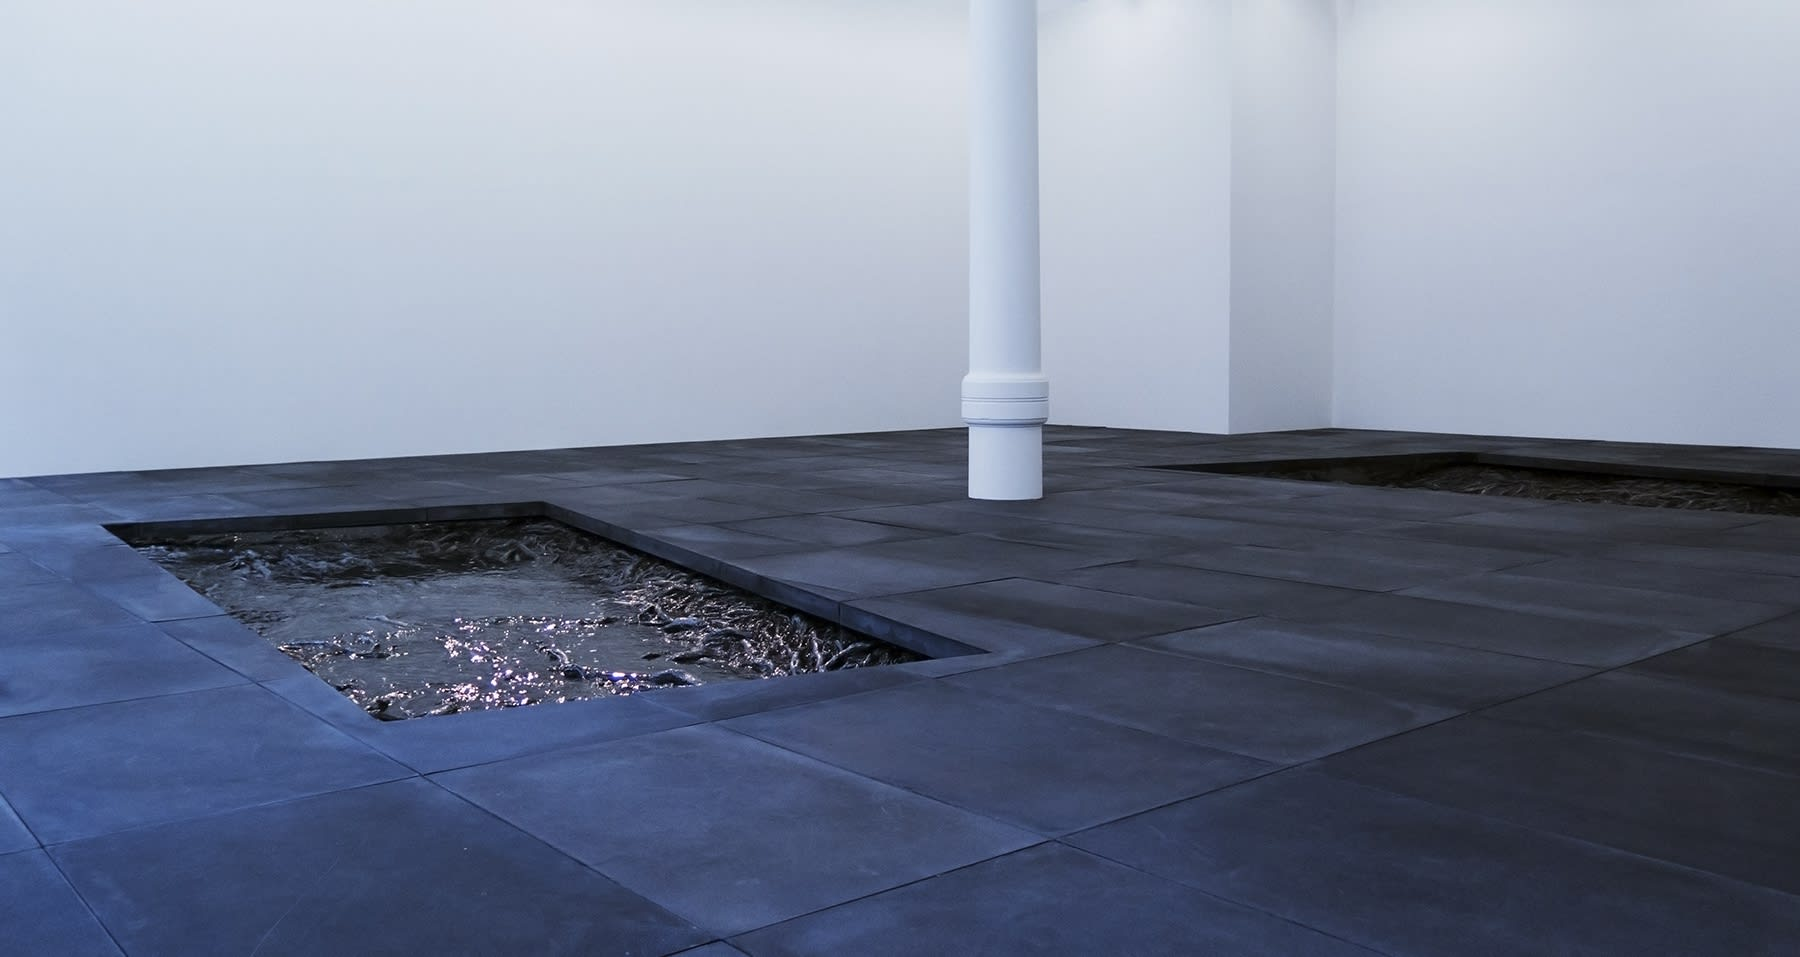 2 rectangles are cut out of a dark grey tiled floor in a large white room. They are filled with cast roots and a surface resembling water. 1 white column stands between the holes.